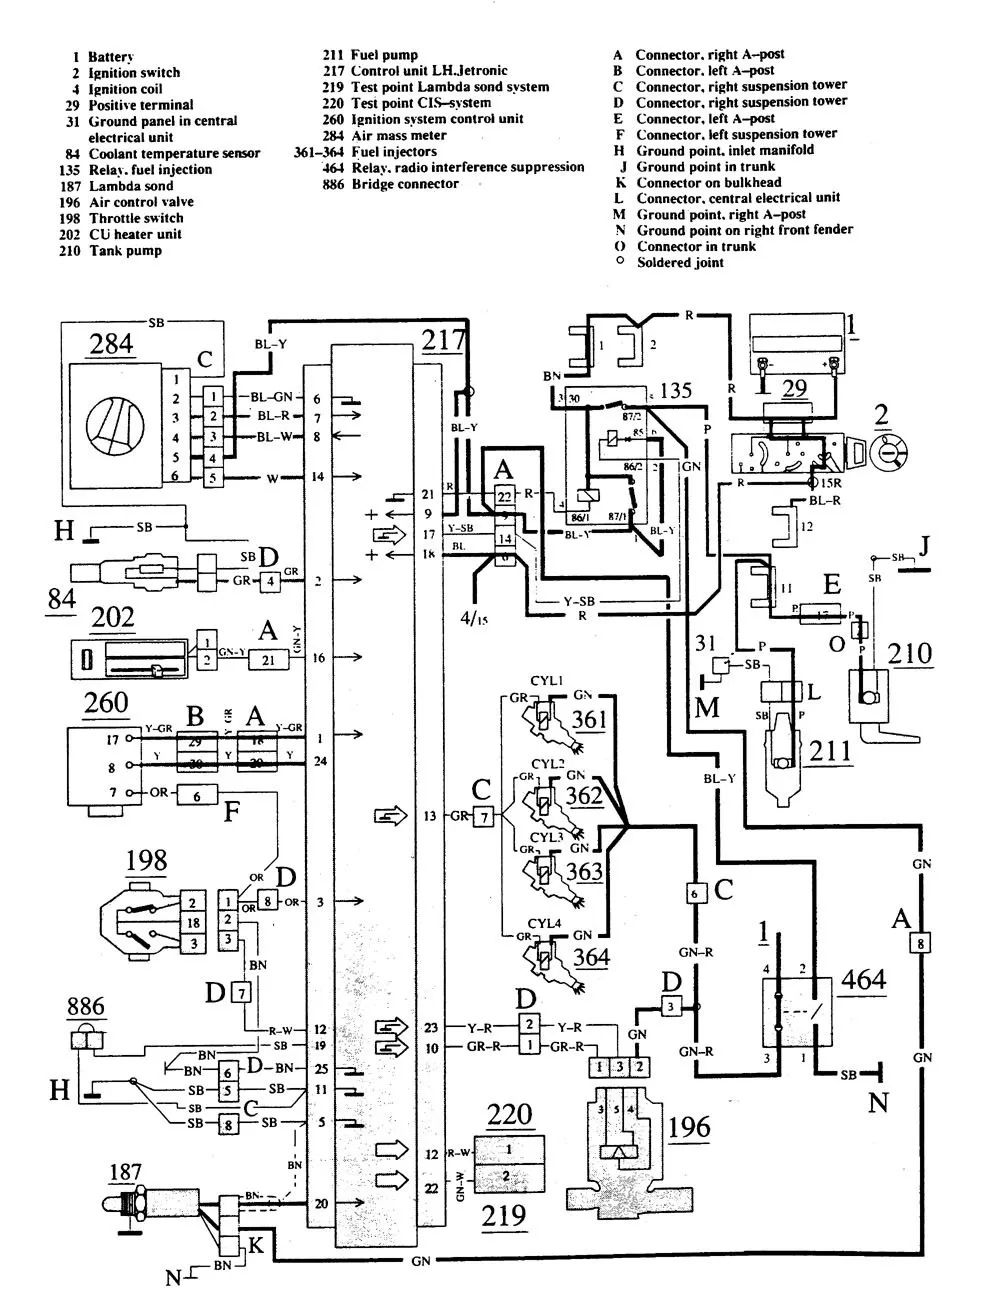 hight resolution of 1988 pontiac fiero wiring diagram pontiac auto wiring